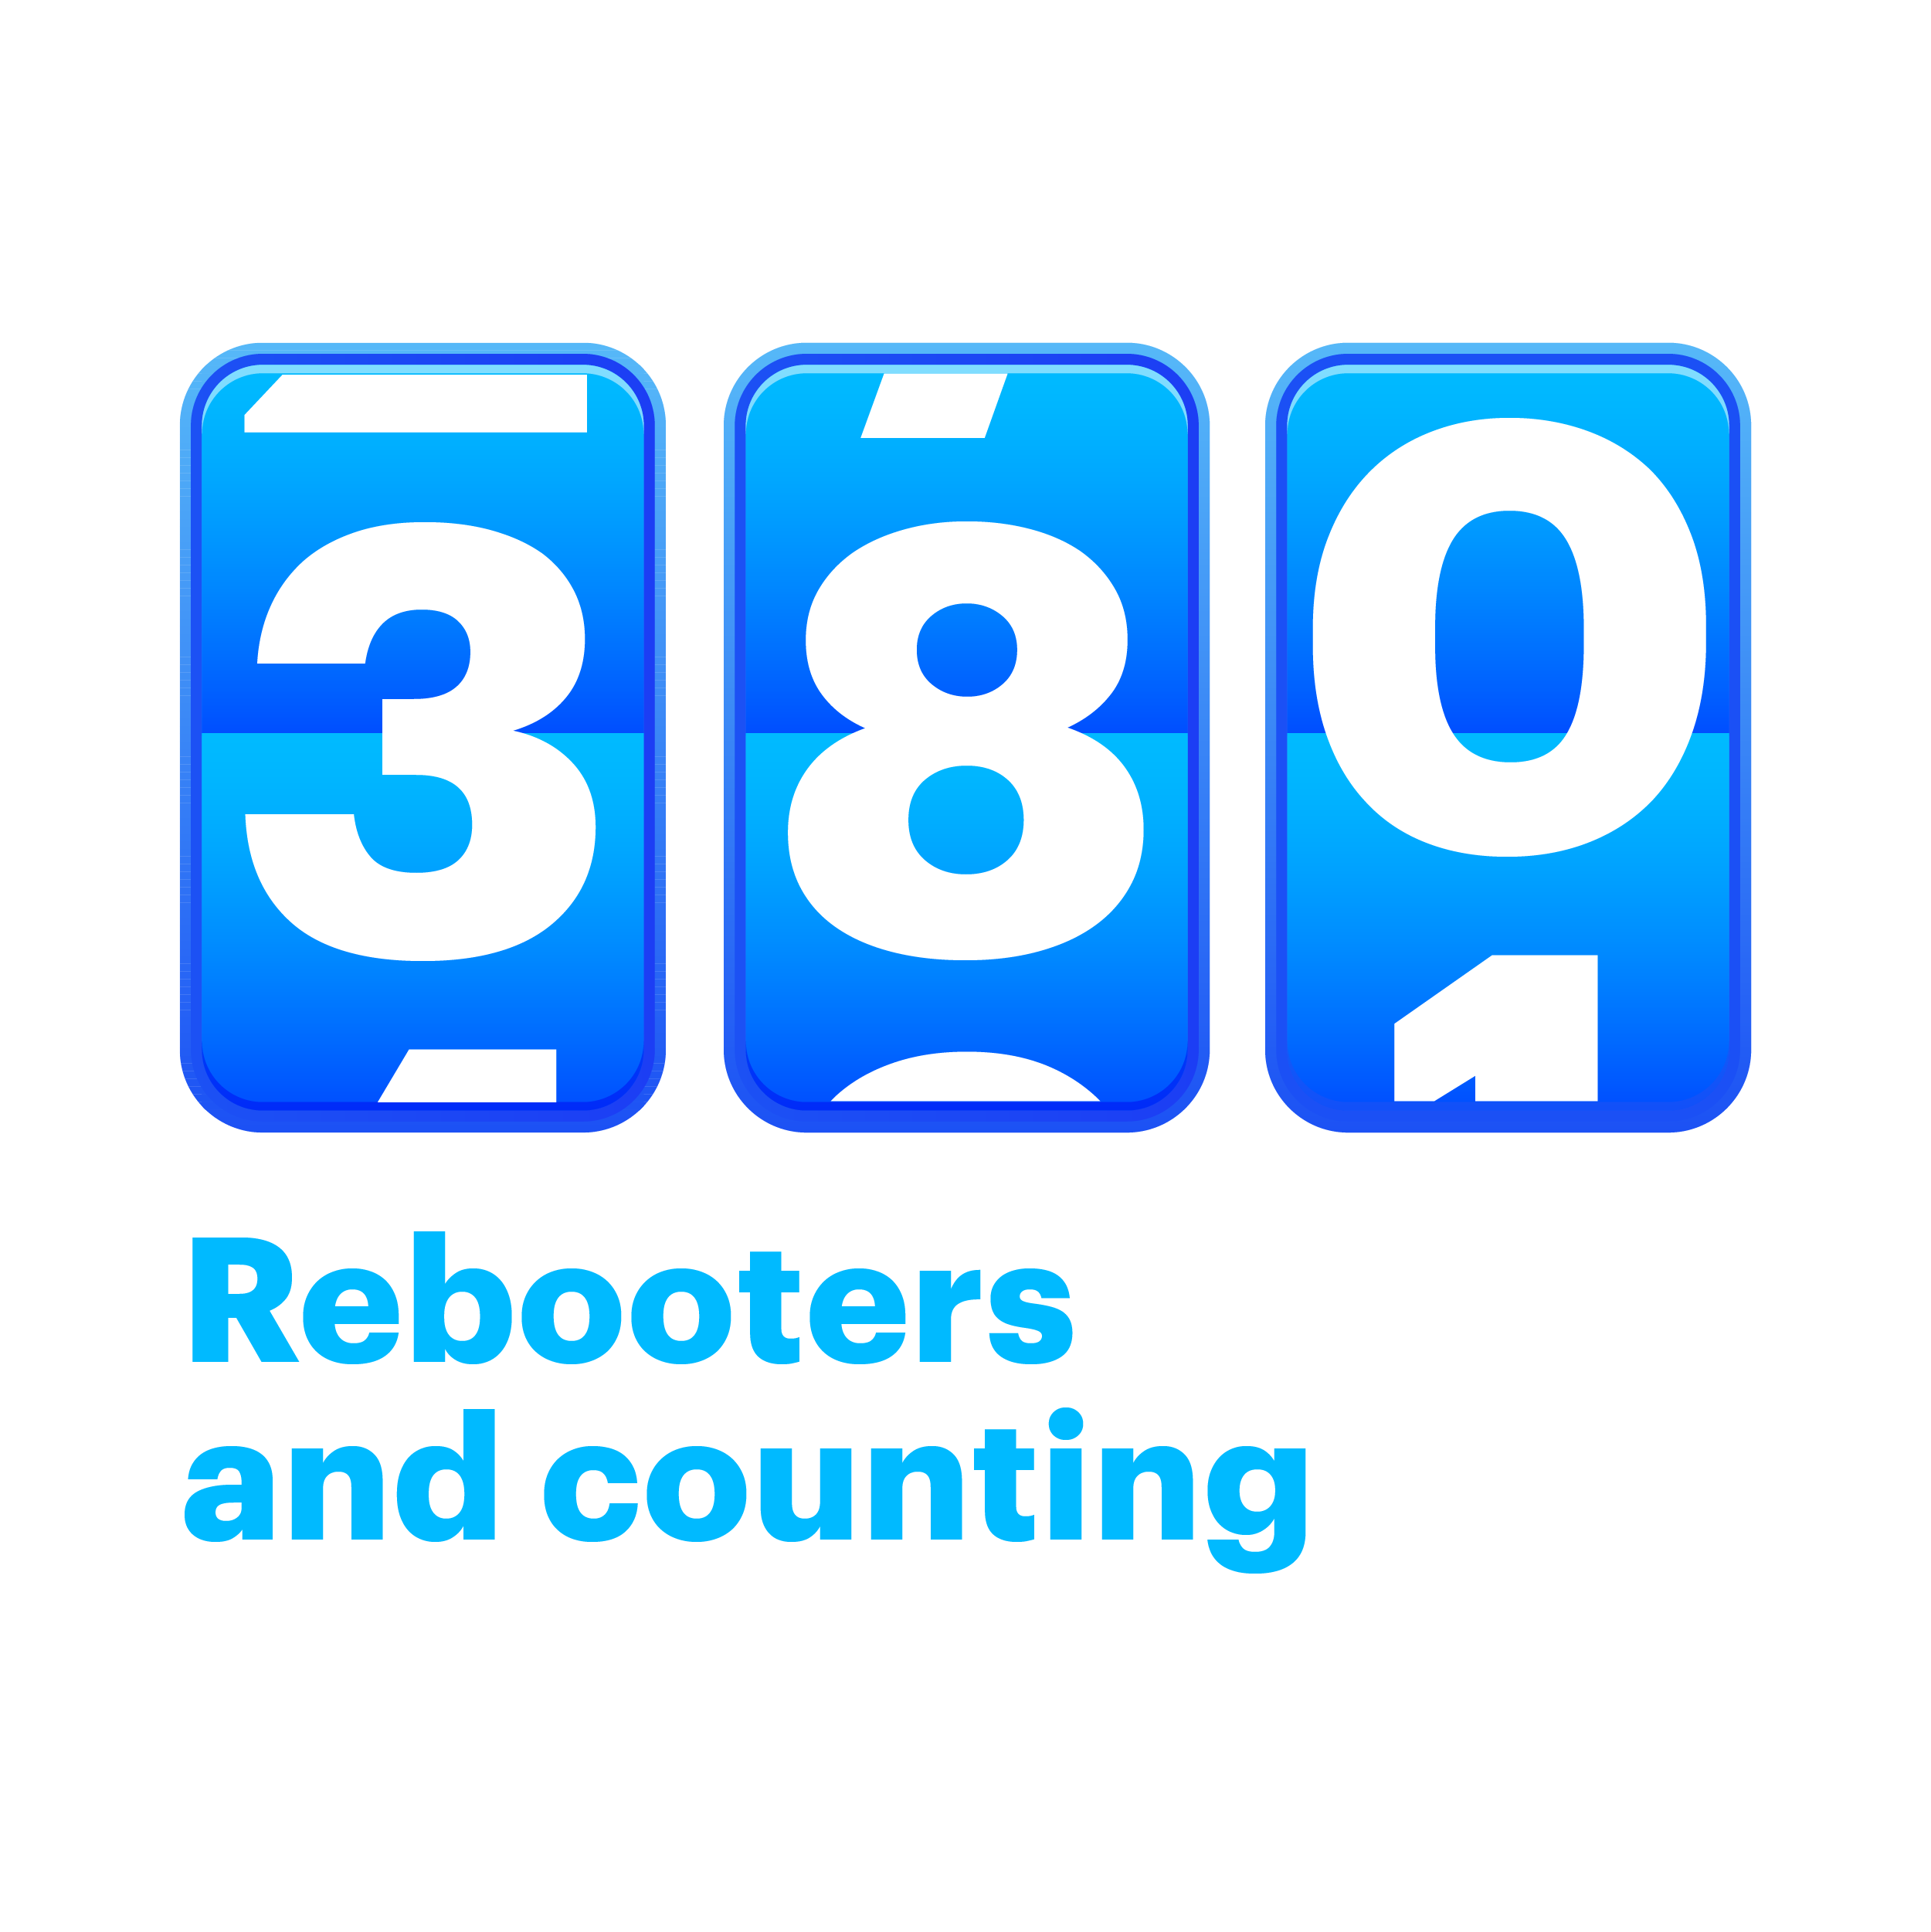 Rebooters and Counting